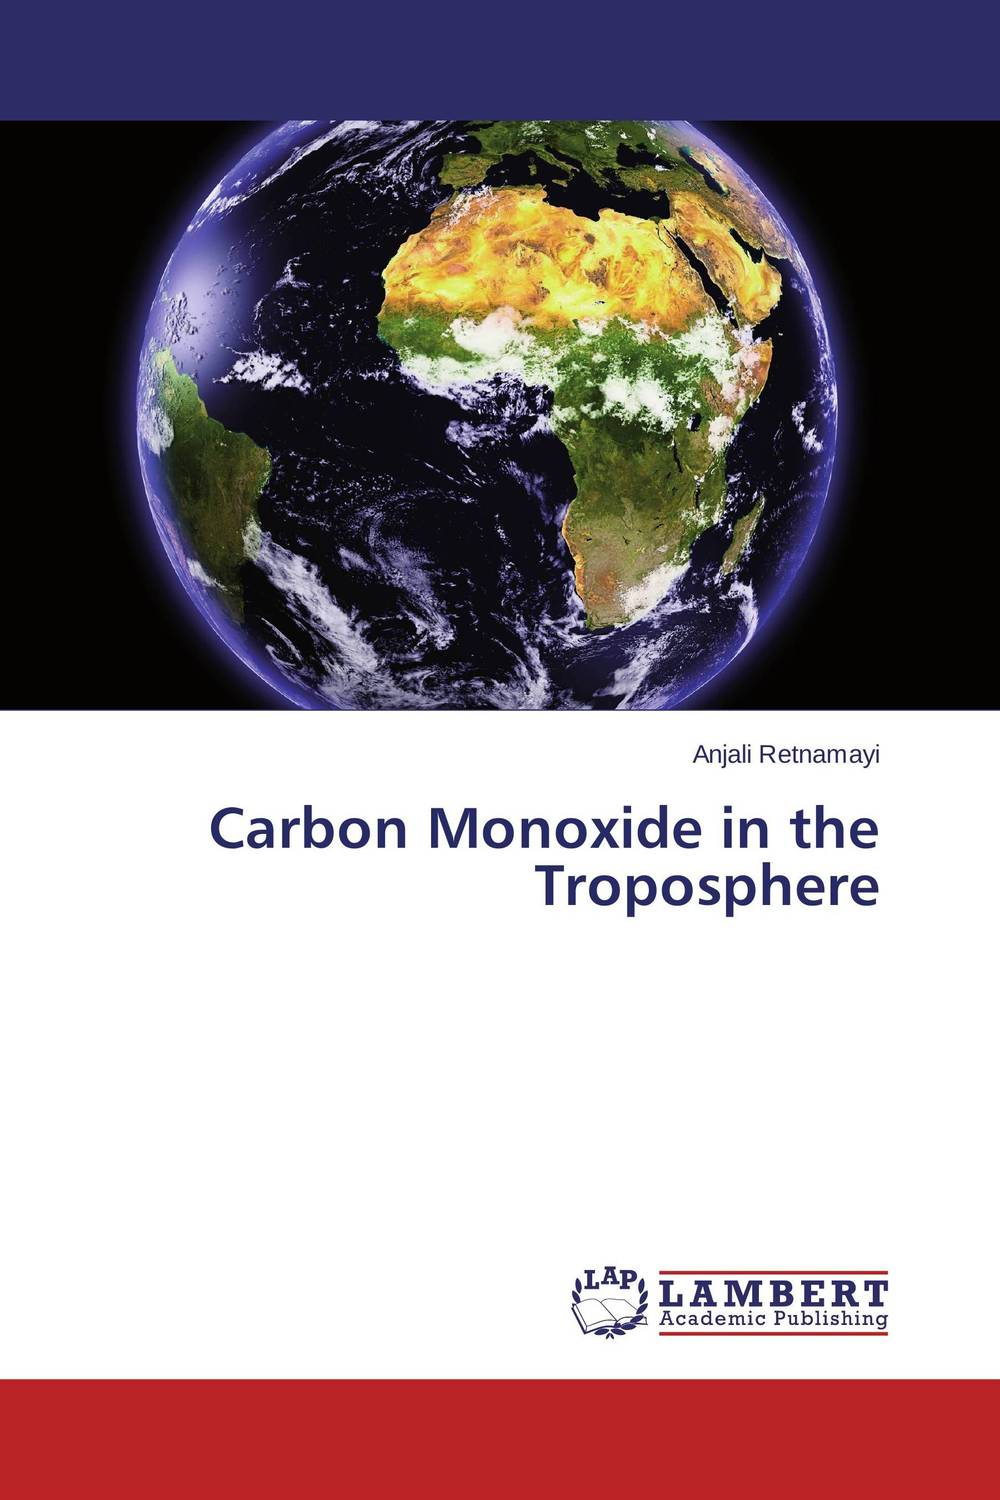 Carbon Monoxide in the Troposphere sanat kumar das and achuthan jayaraman atmospheric radiative forcing